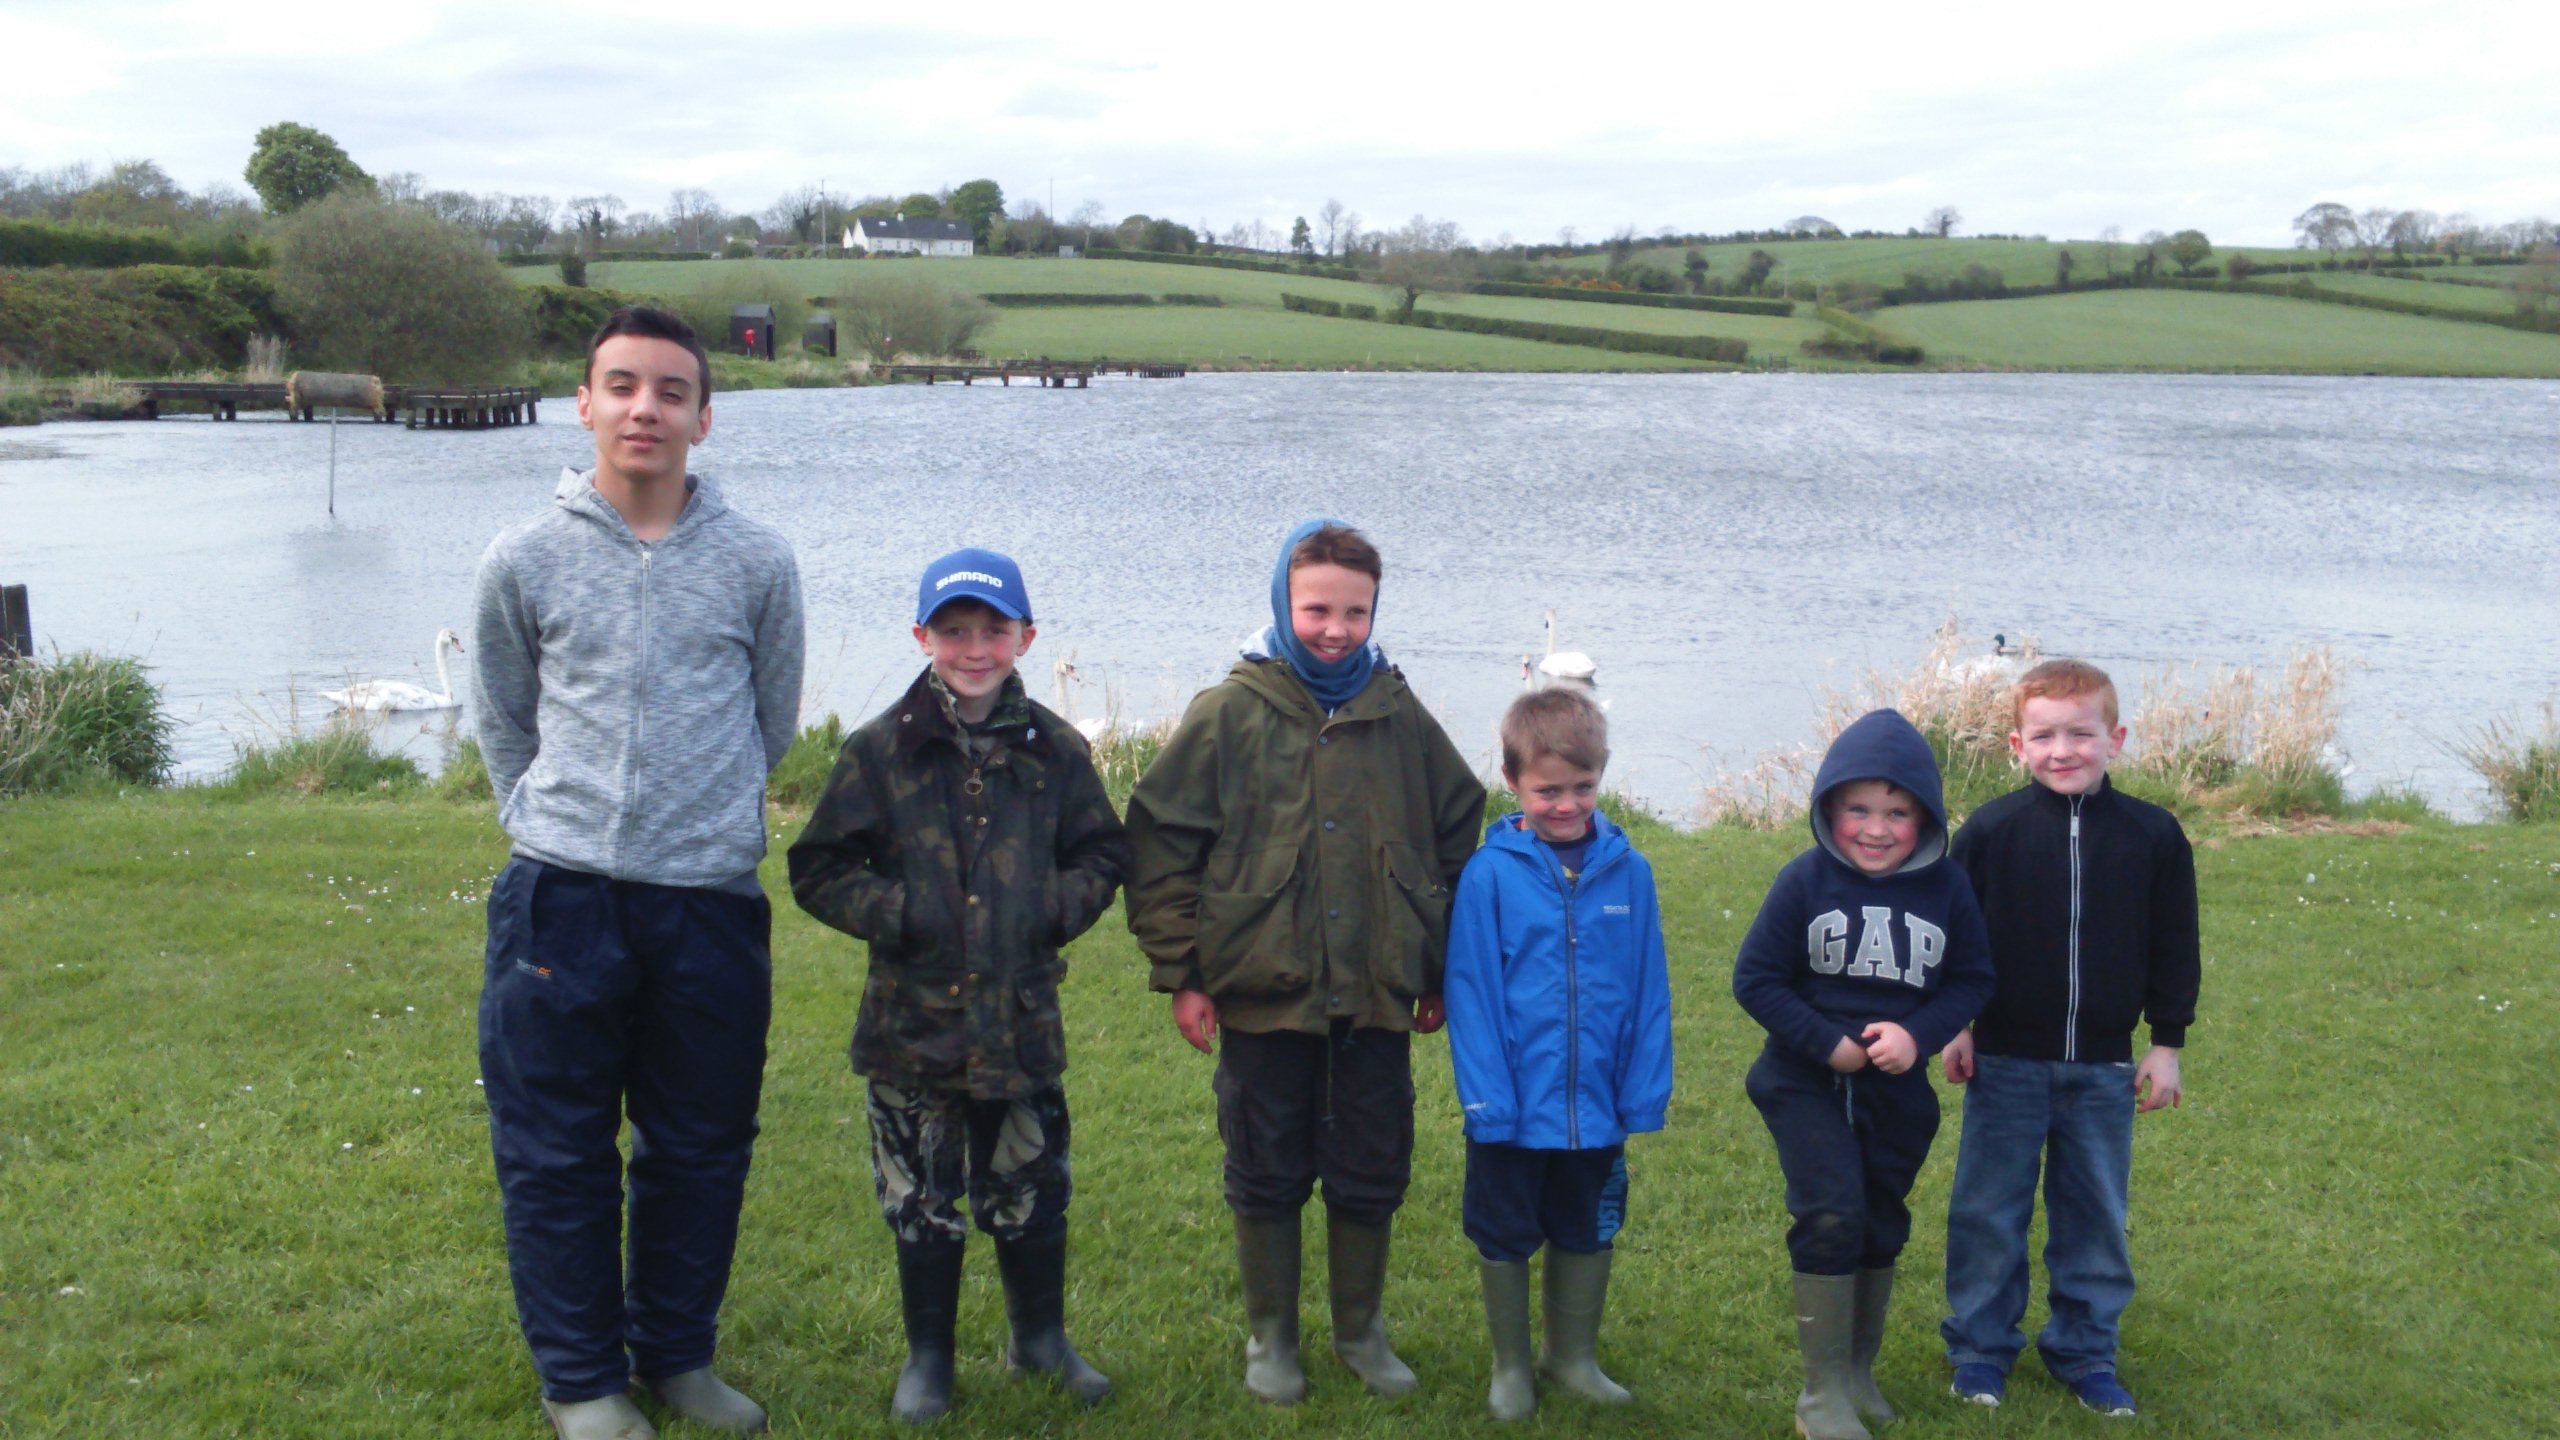 BAC Junior anglers who fished in the Percy Trophy at Corbet Lough on 29 April 2017